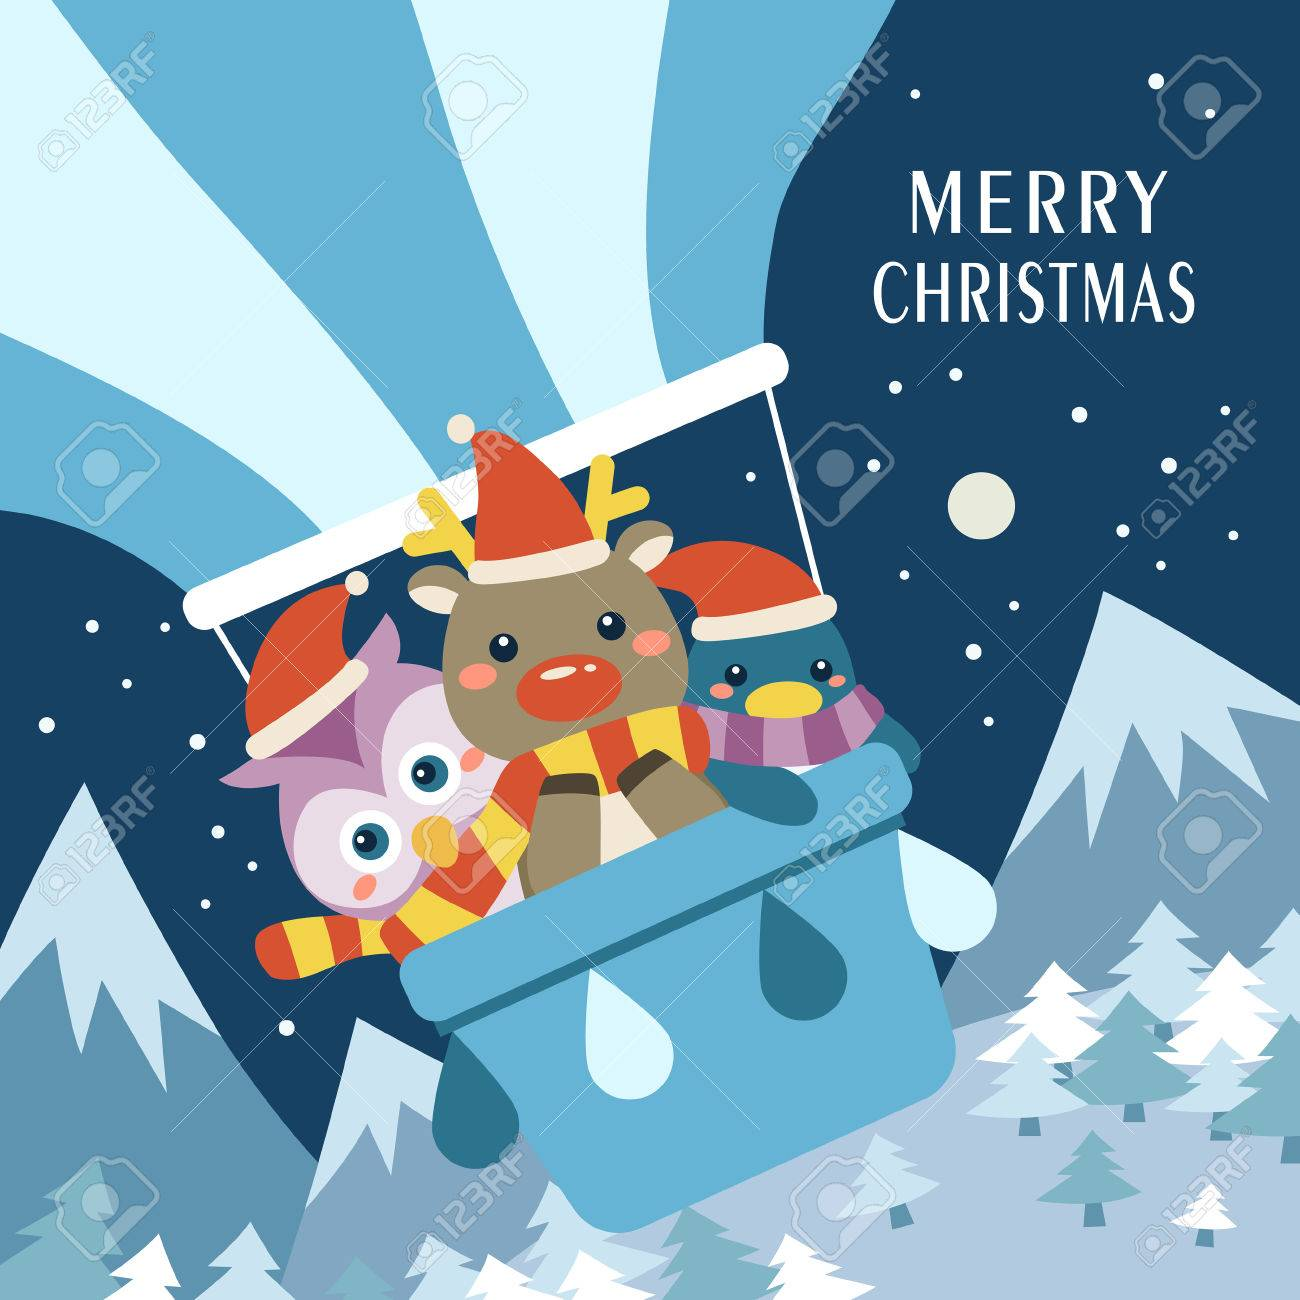 Adorable Merry Christmas Card Design With Lovely Animals